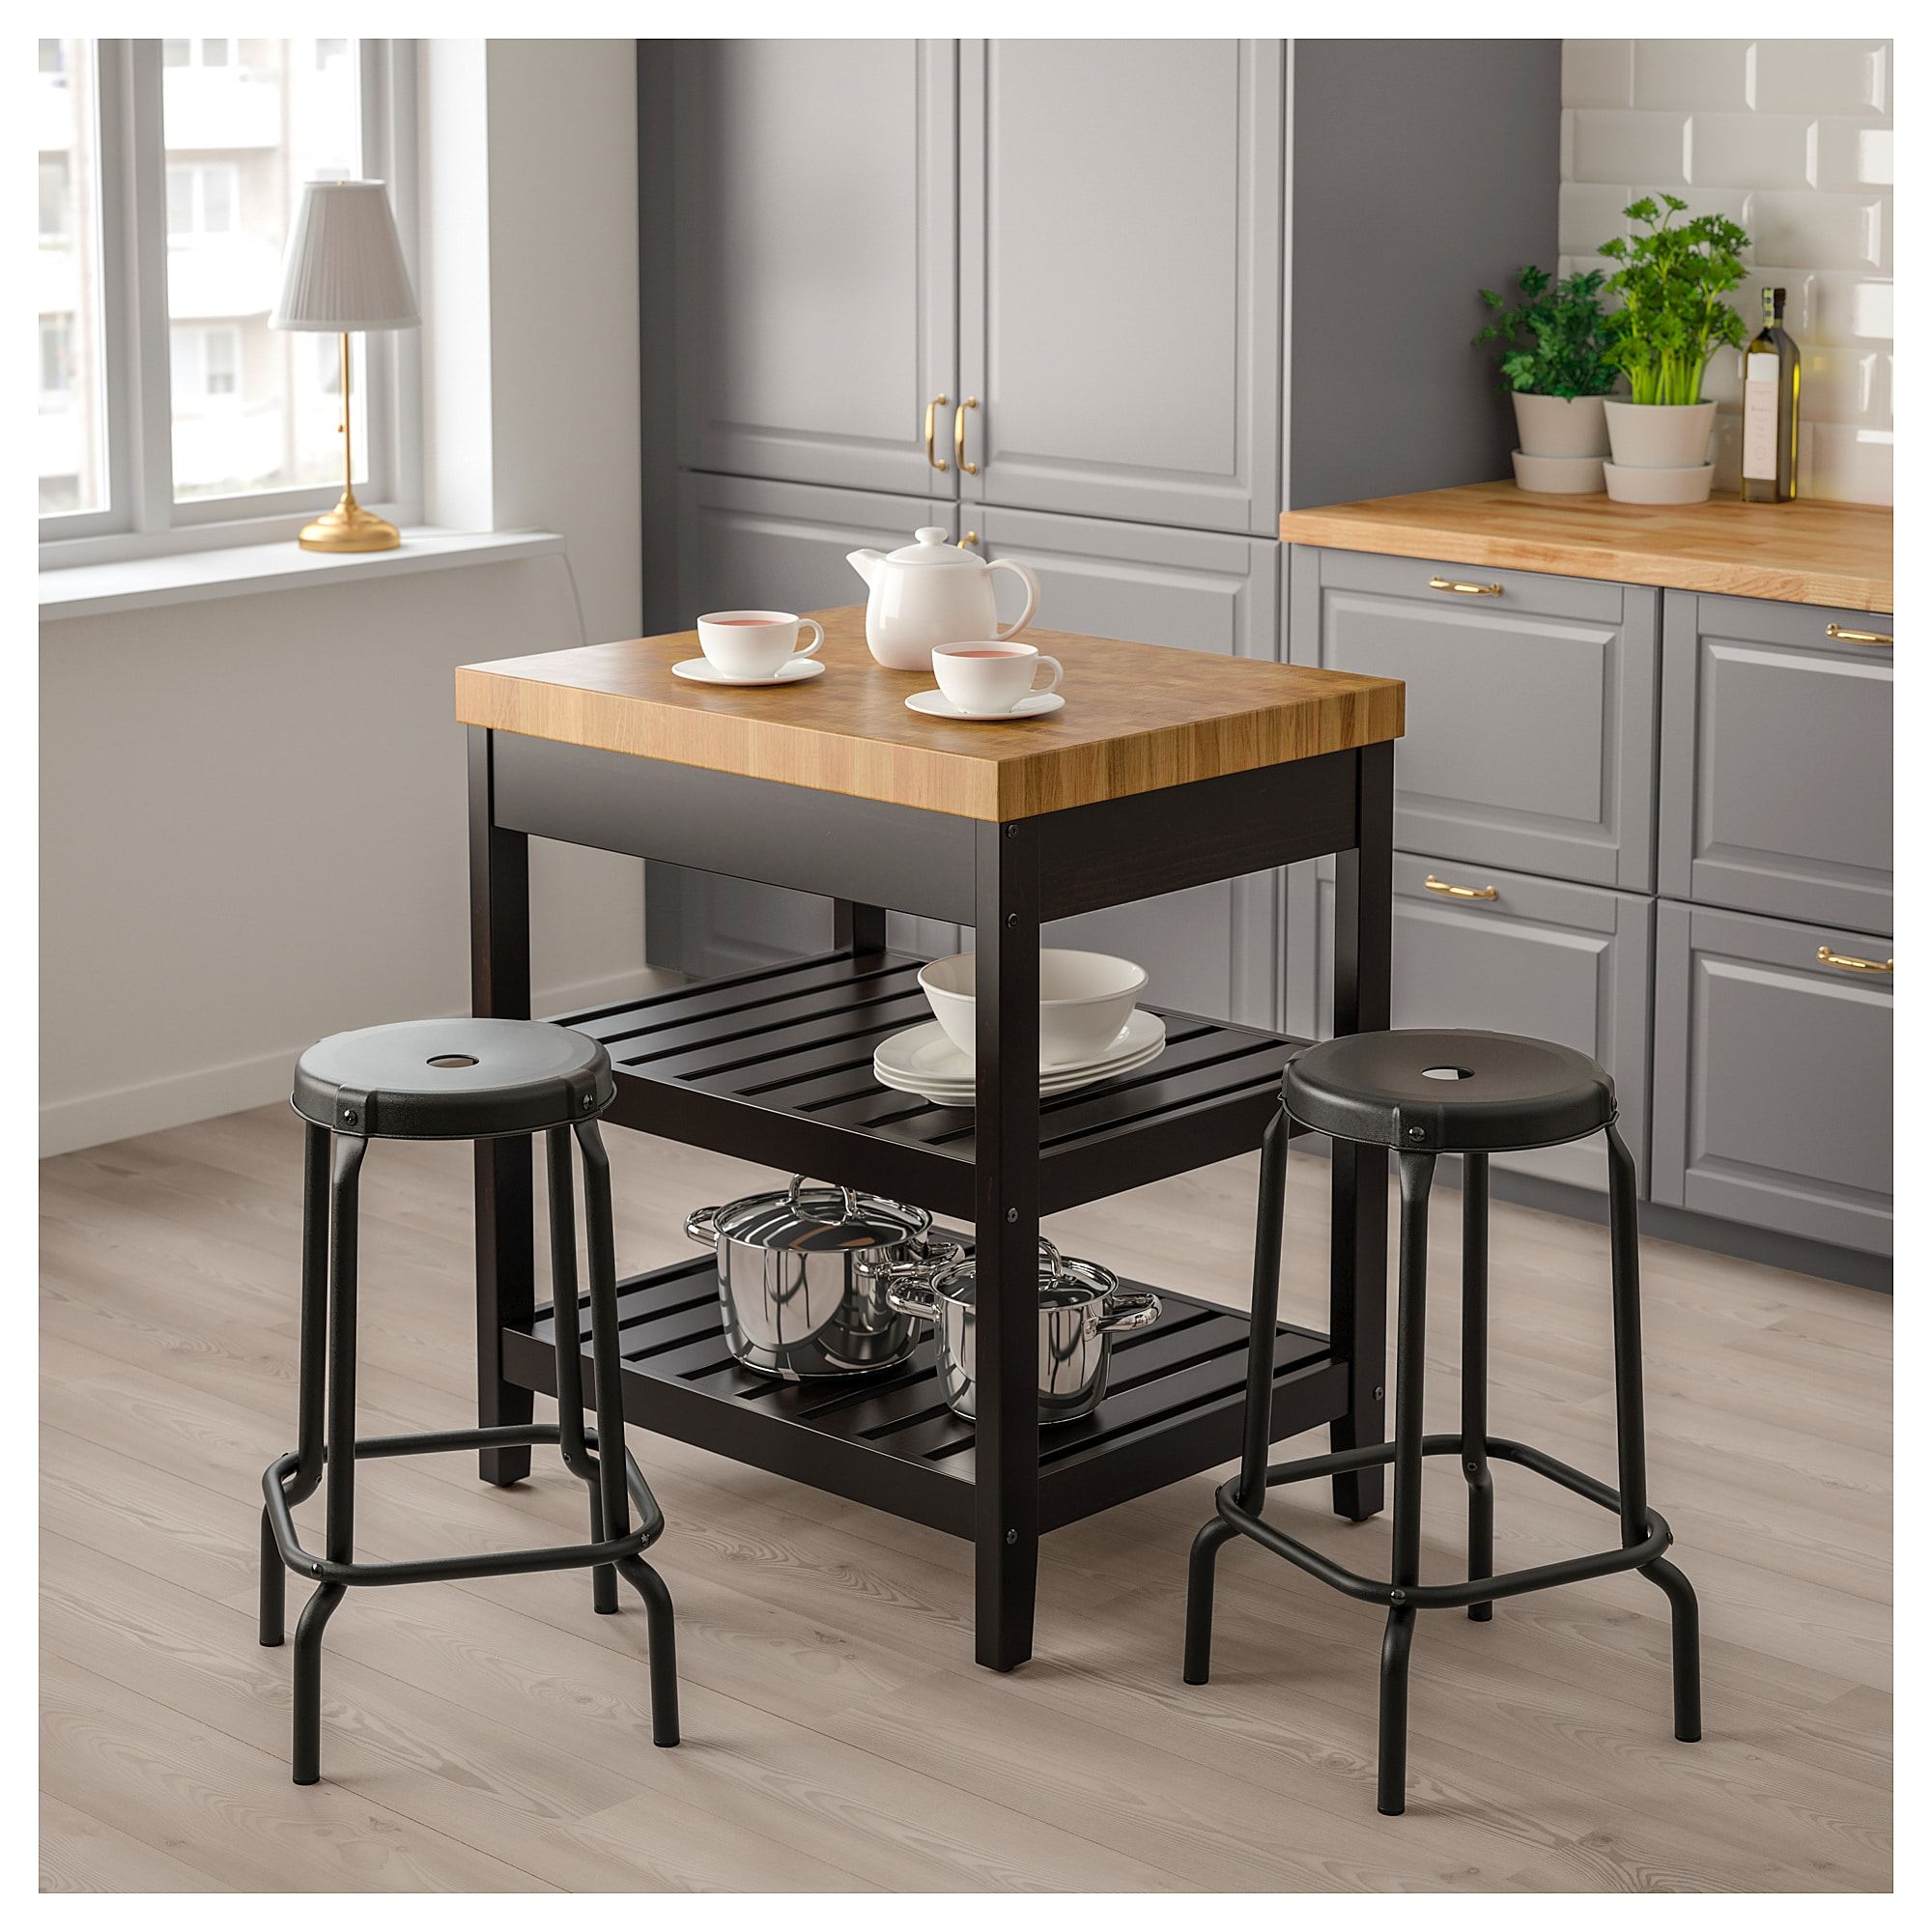 VADHOLMA Kitchen Island, Black, Oak In 2019